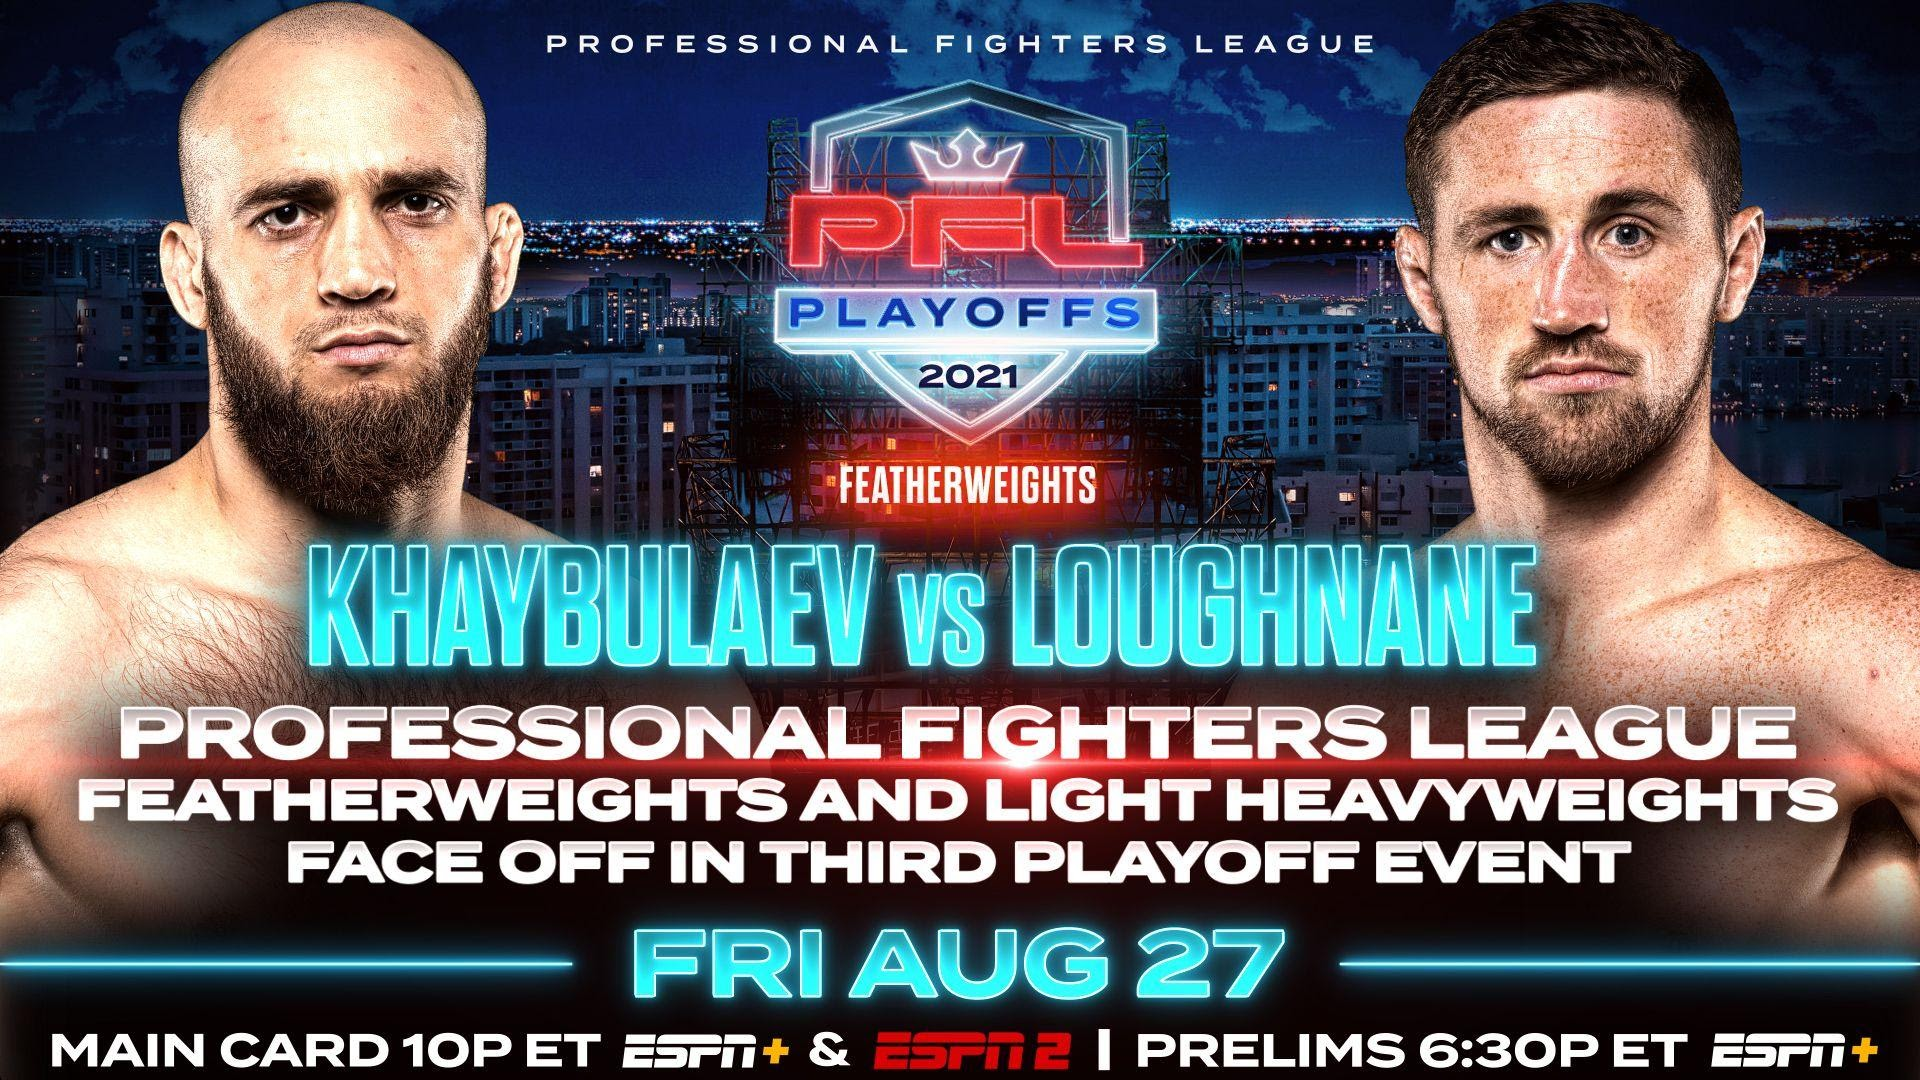 PROFESSIONAL FIGHTERS LEAGUE FEATHERWEIGHTS AND LIGHT HEAVYWEIGHTS FACE OFF IN THIRD PLAYOFF EVENT ON FRIDAY, AUGUST 27